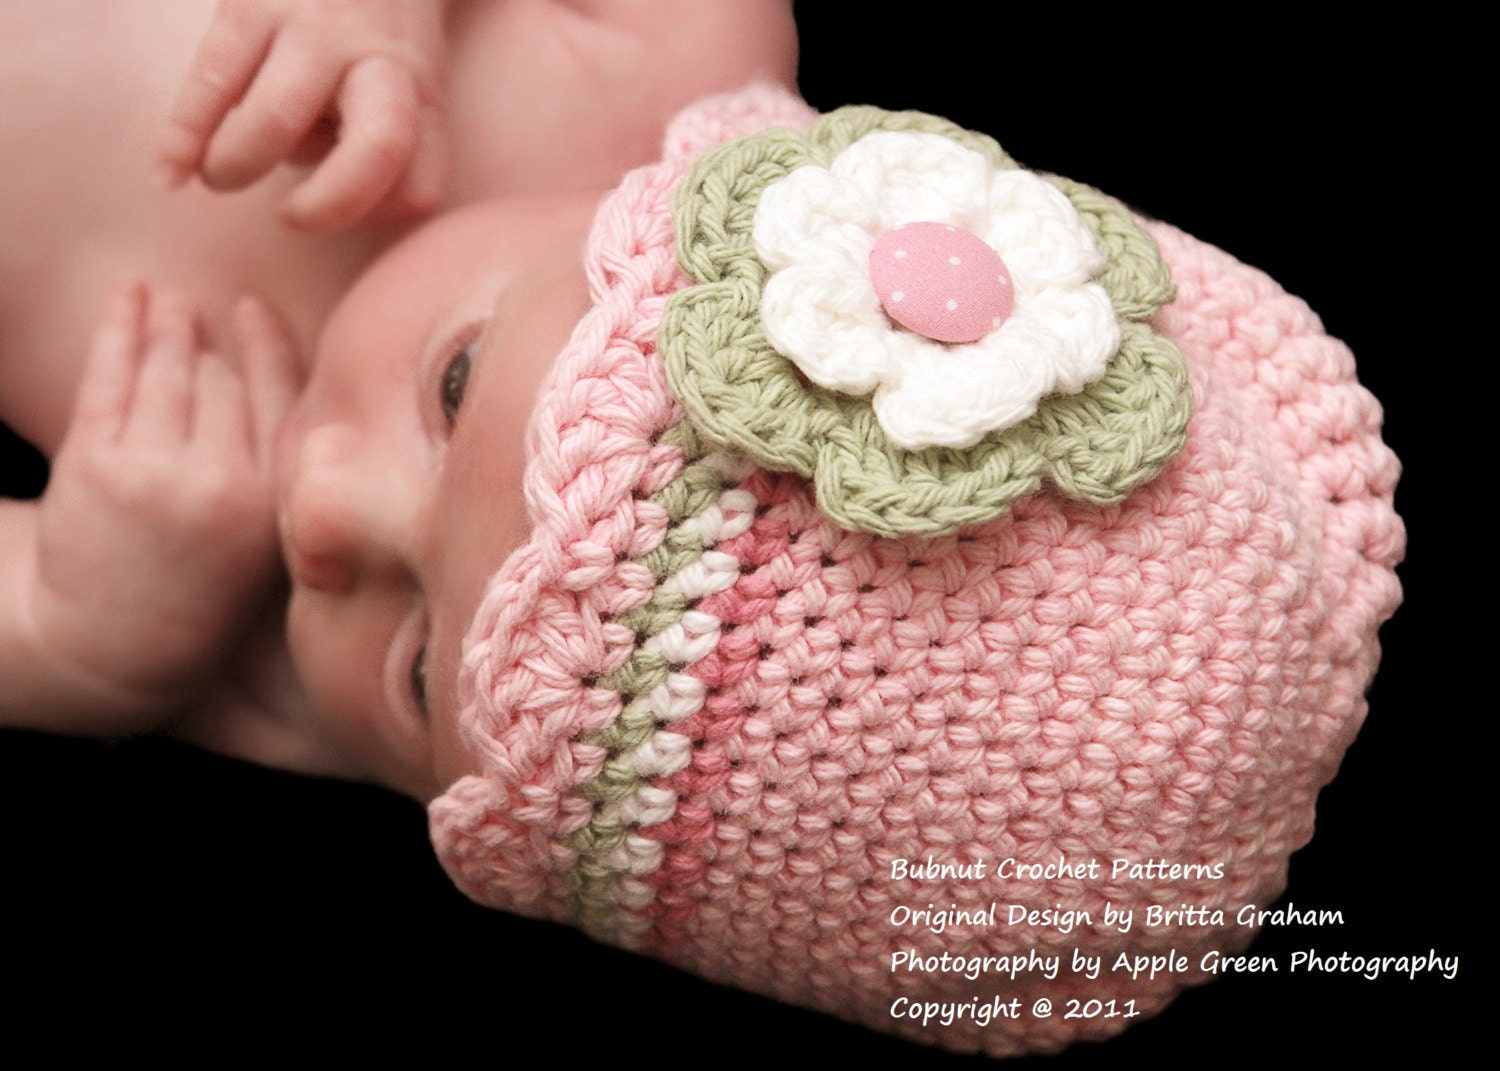 Crocheting A Baby Hat : Baby Hat Crochet Pattern with Shell Trim Crochet Hat Pattern by ...